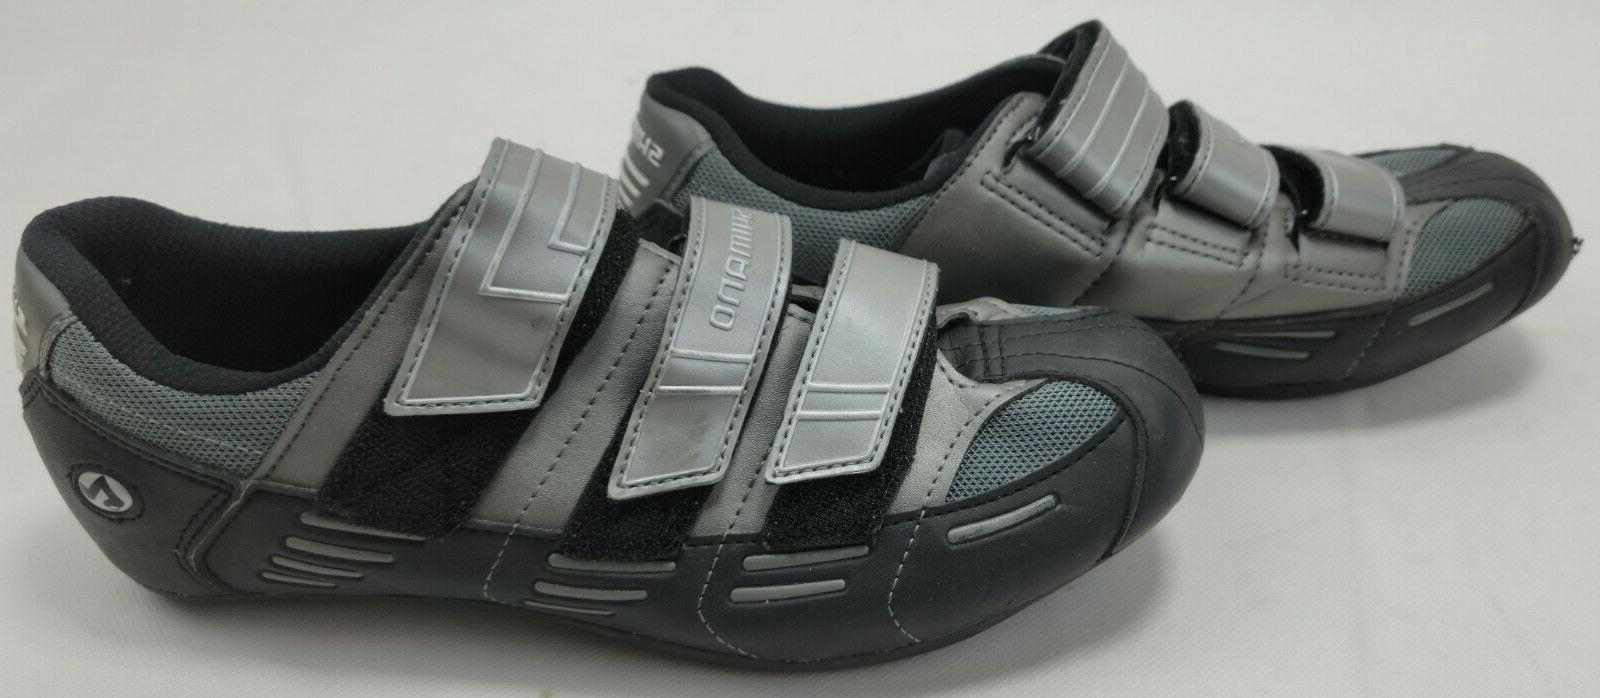 Shimano Men's Clip In Cycling Shoes SH-RT50 Size